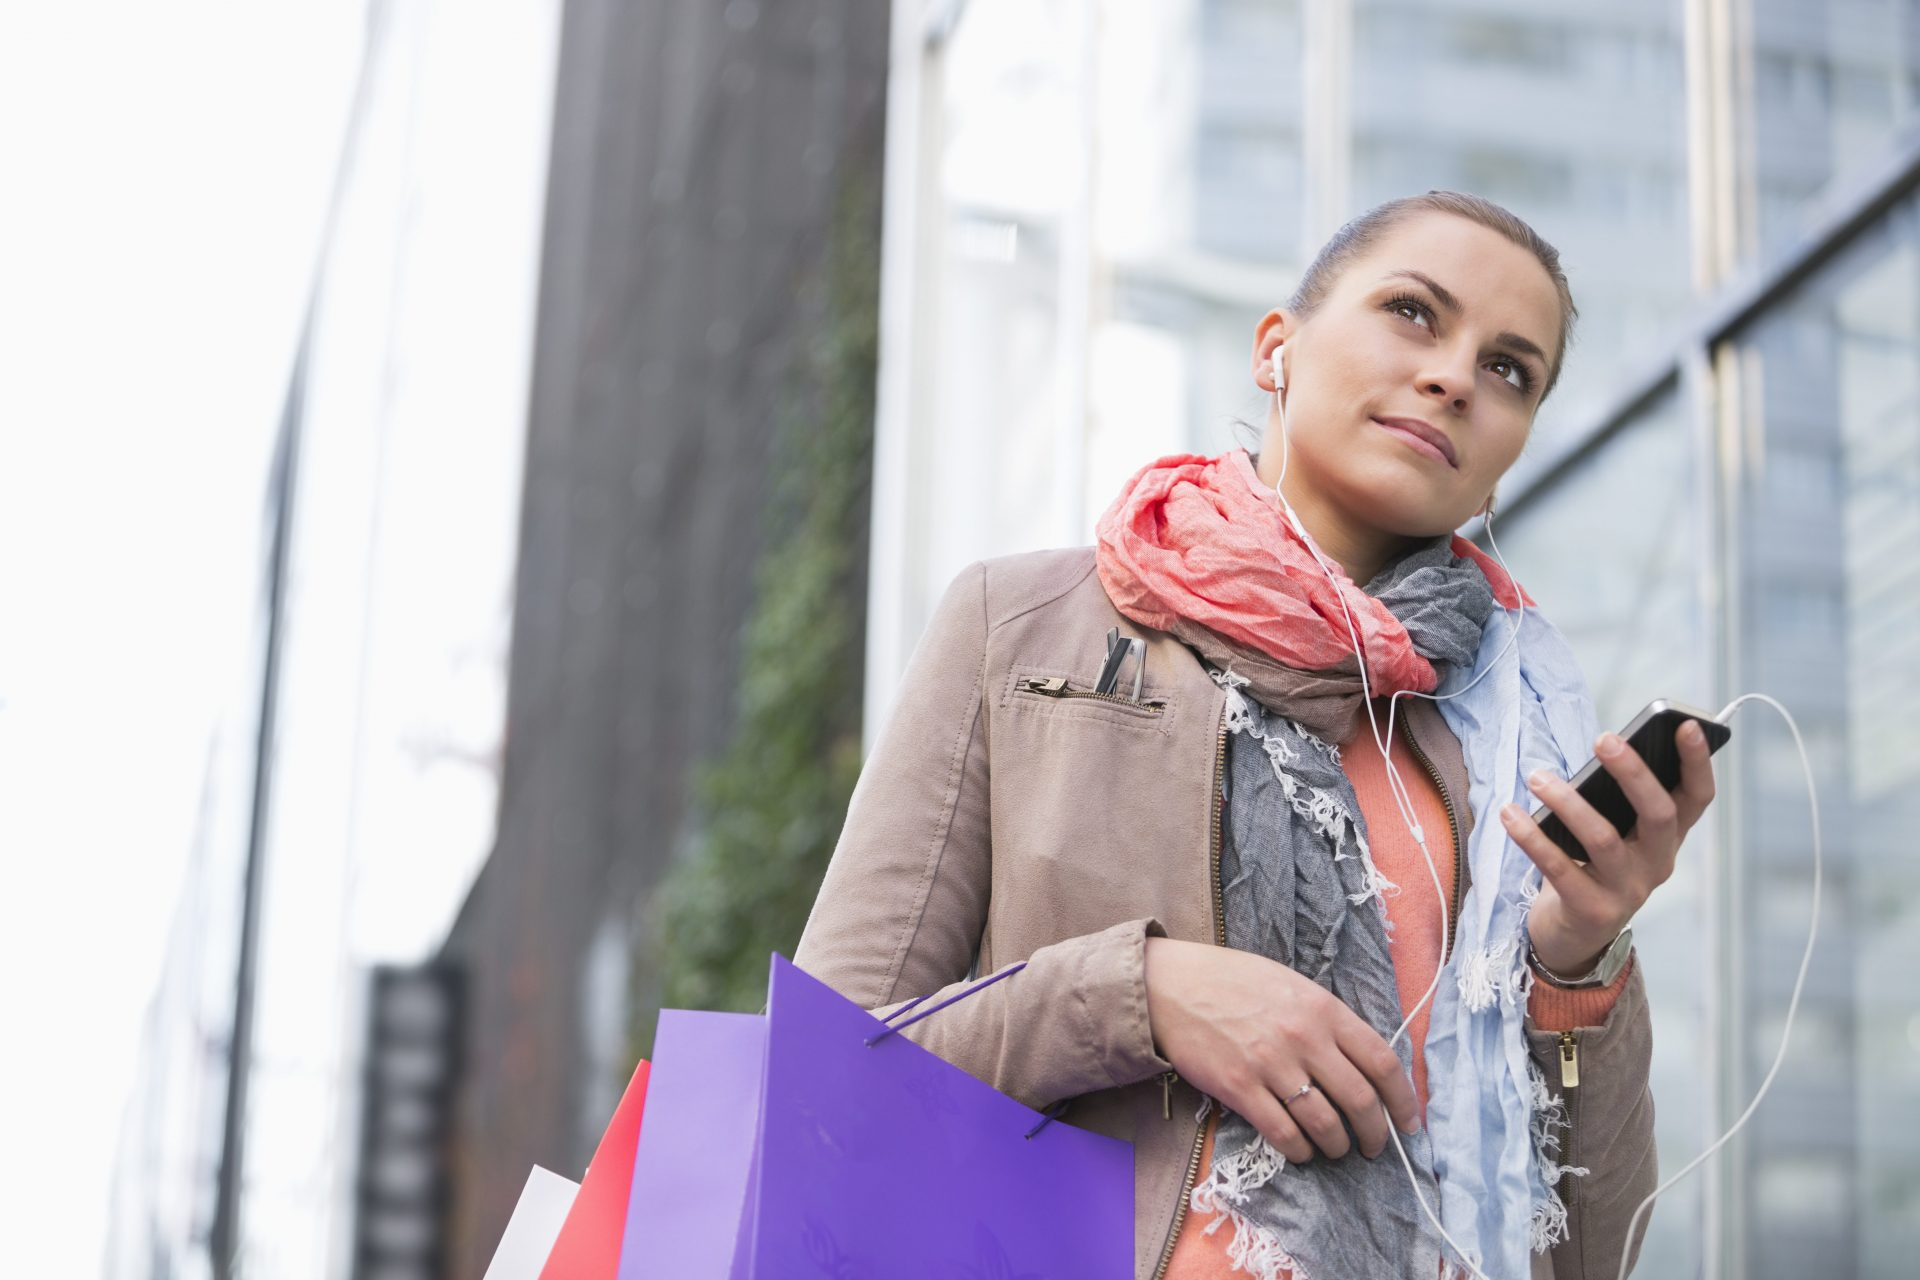 Low angle view of young woman listening to music while shopping